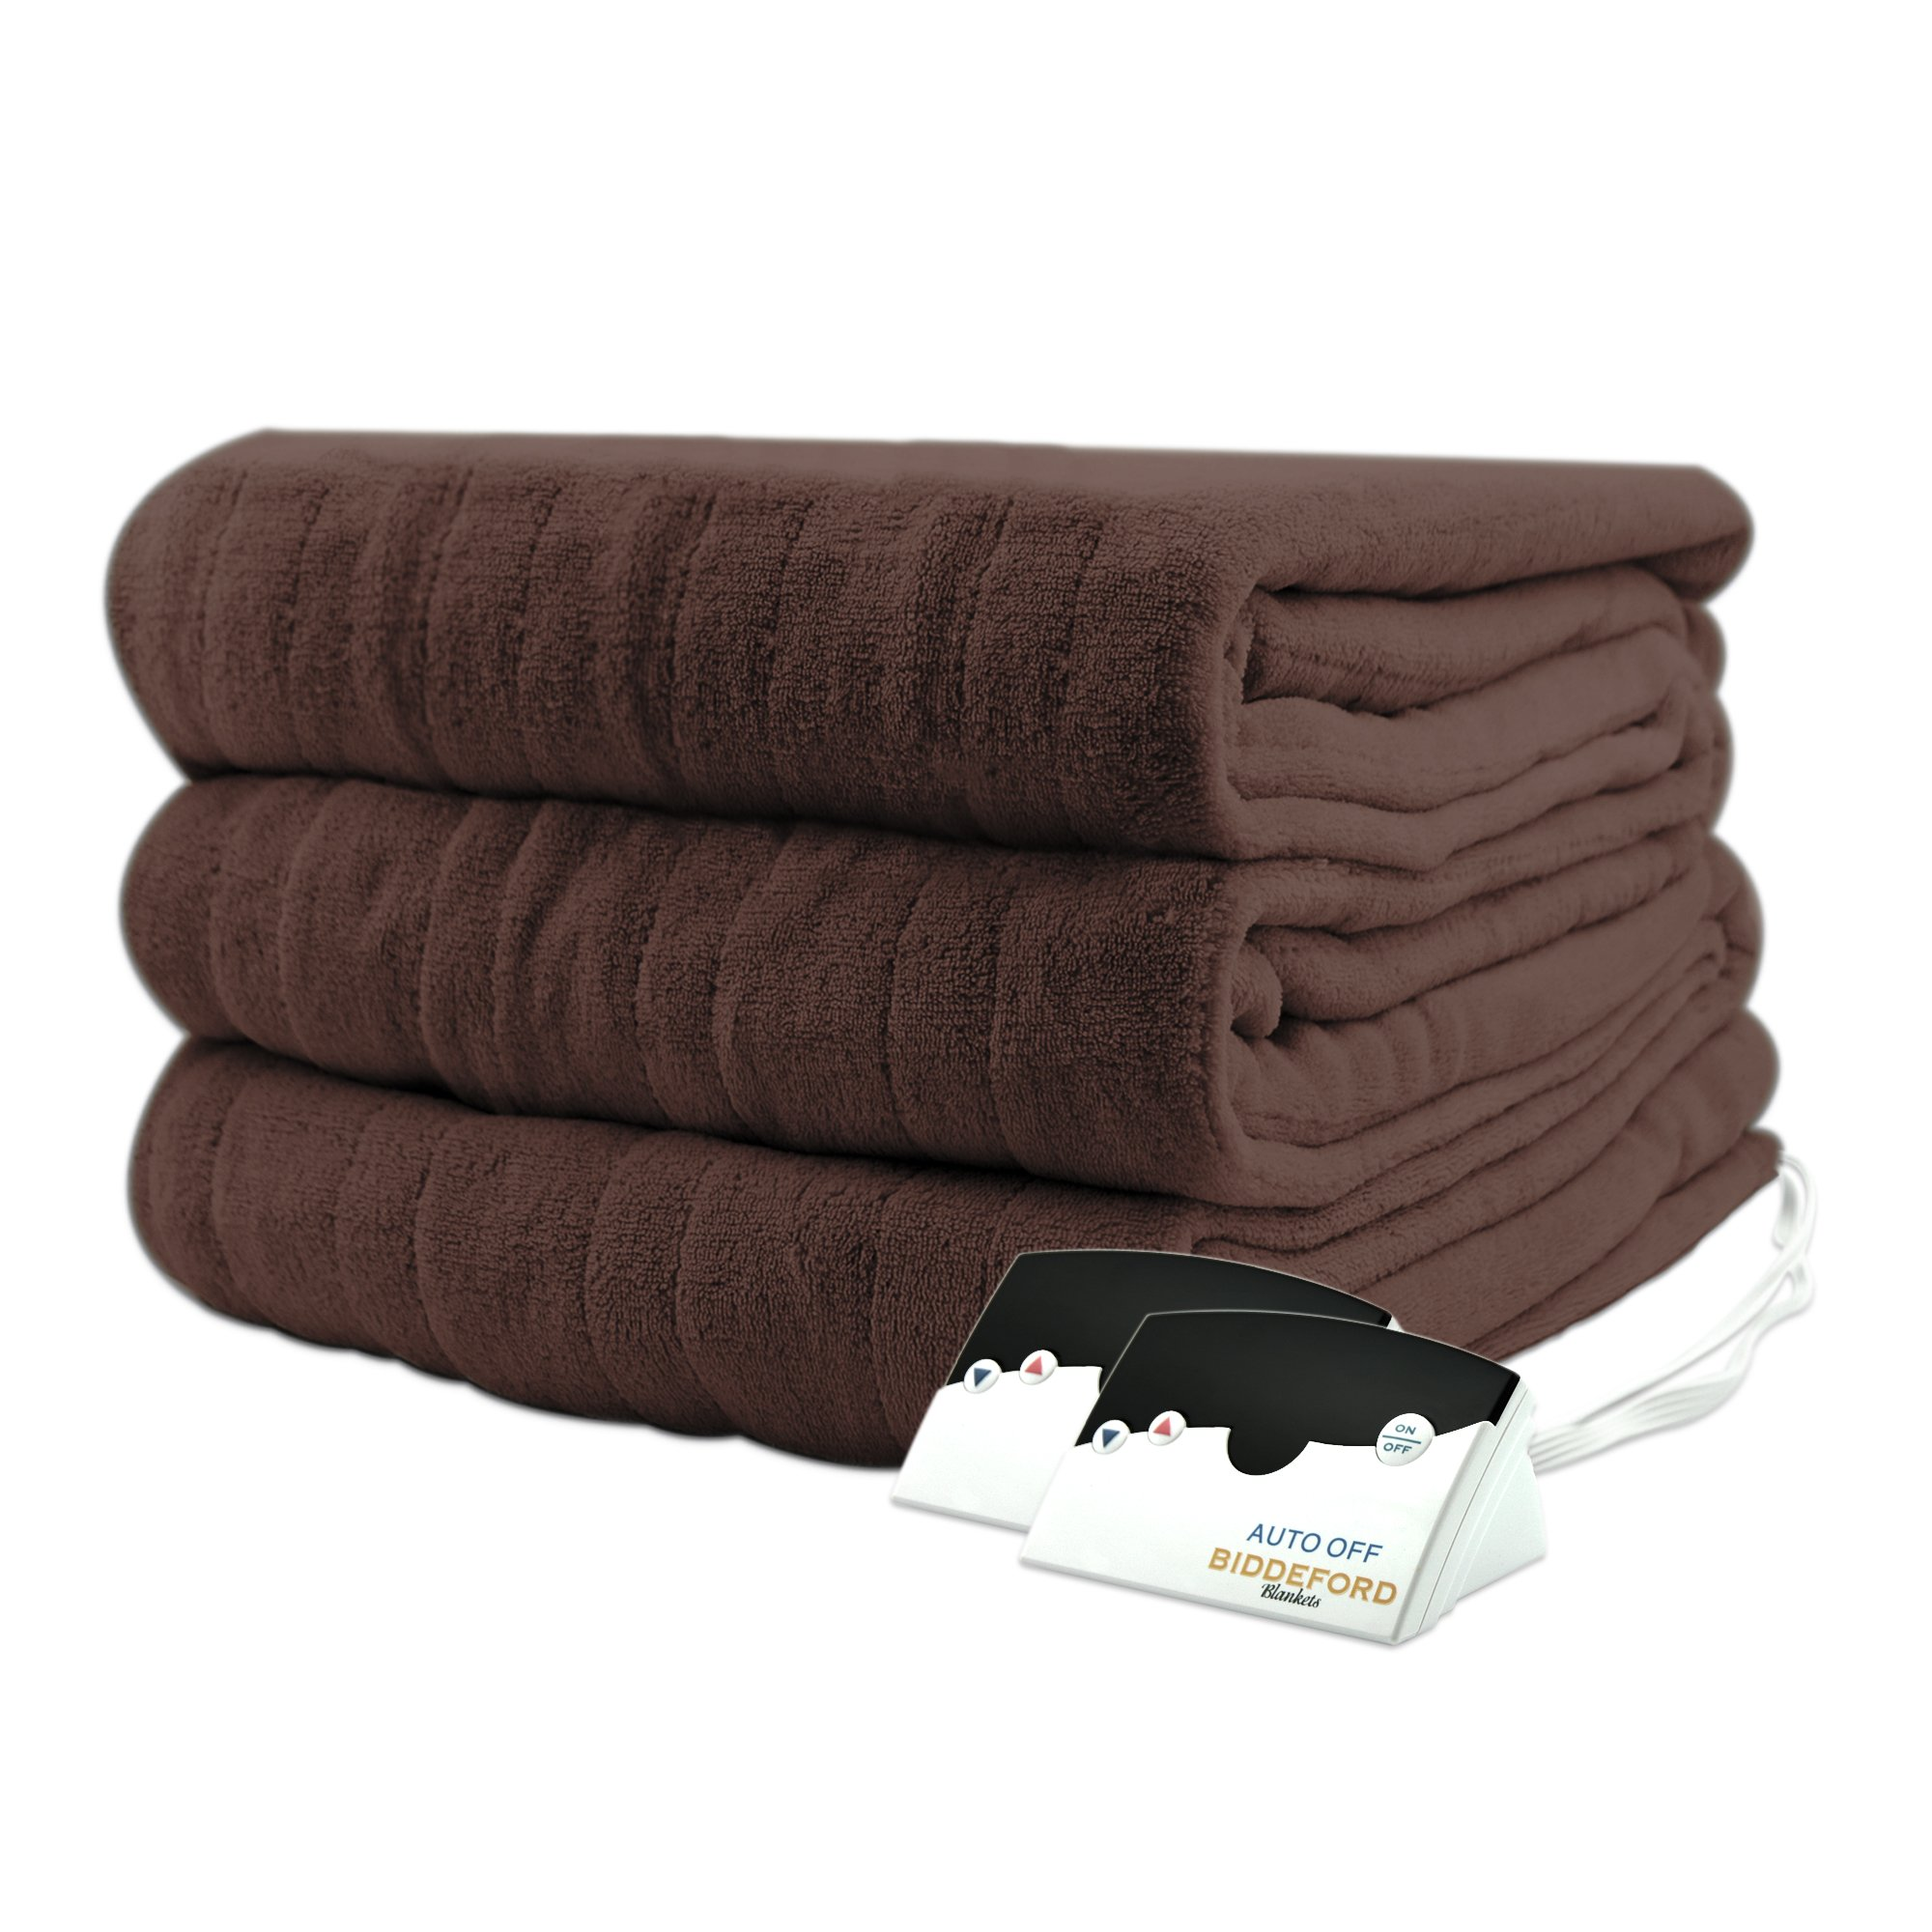 Biddeford 2023-905291-711 Electric Heated Knit MicroPlush Blanket, Queen, Chocolate by Biddeford